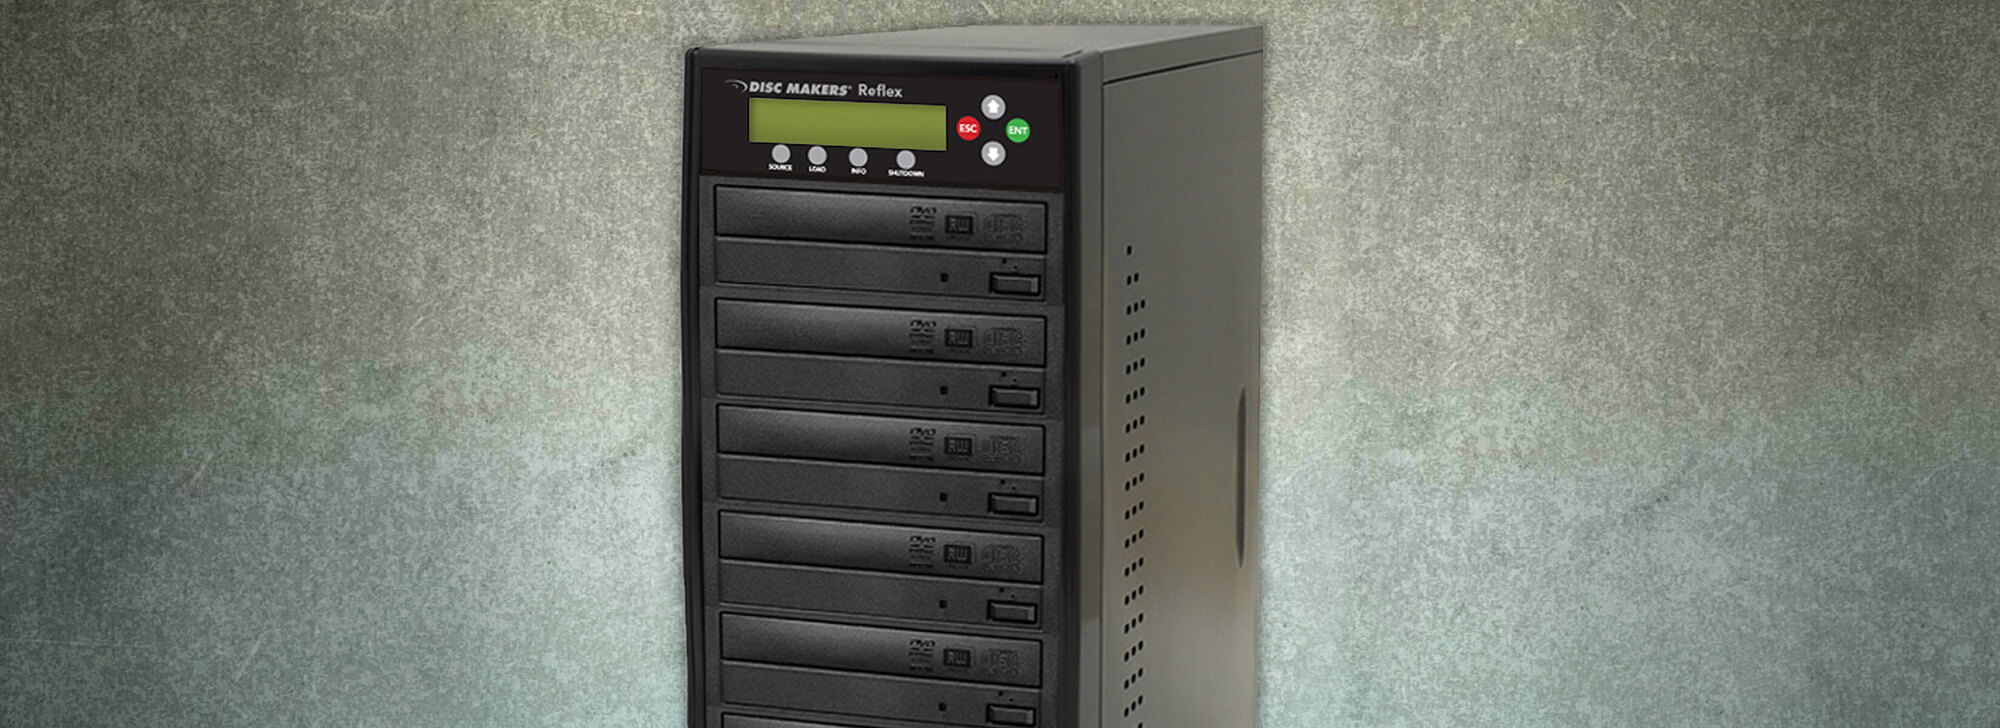 Network CD/DVD Duplicator